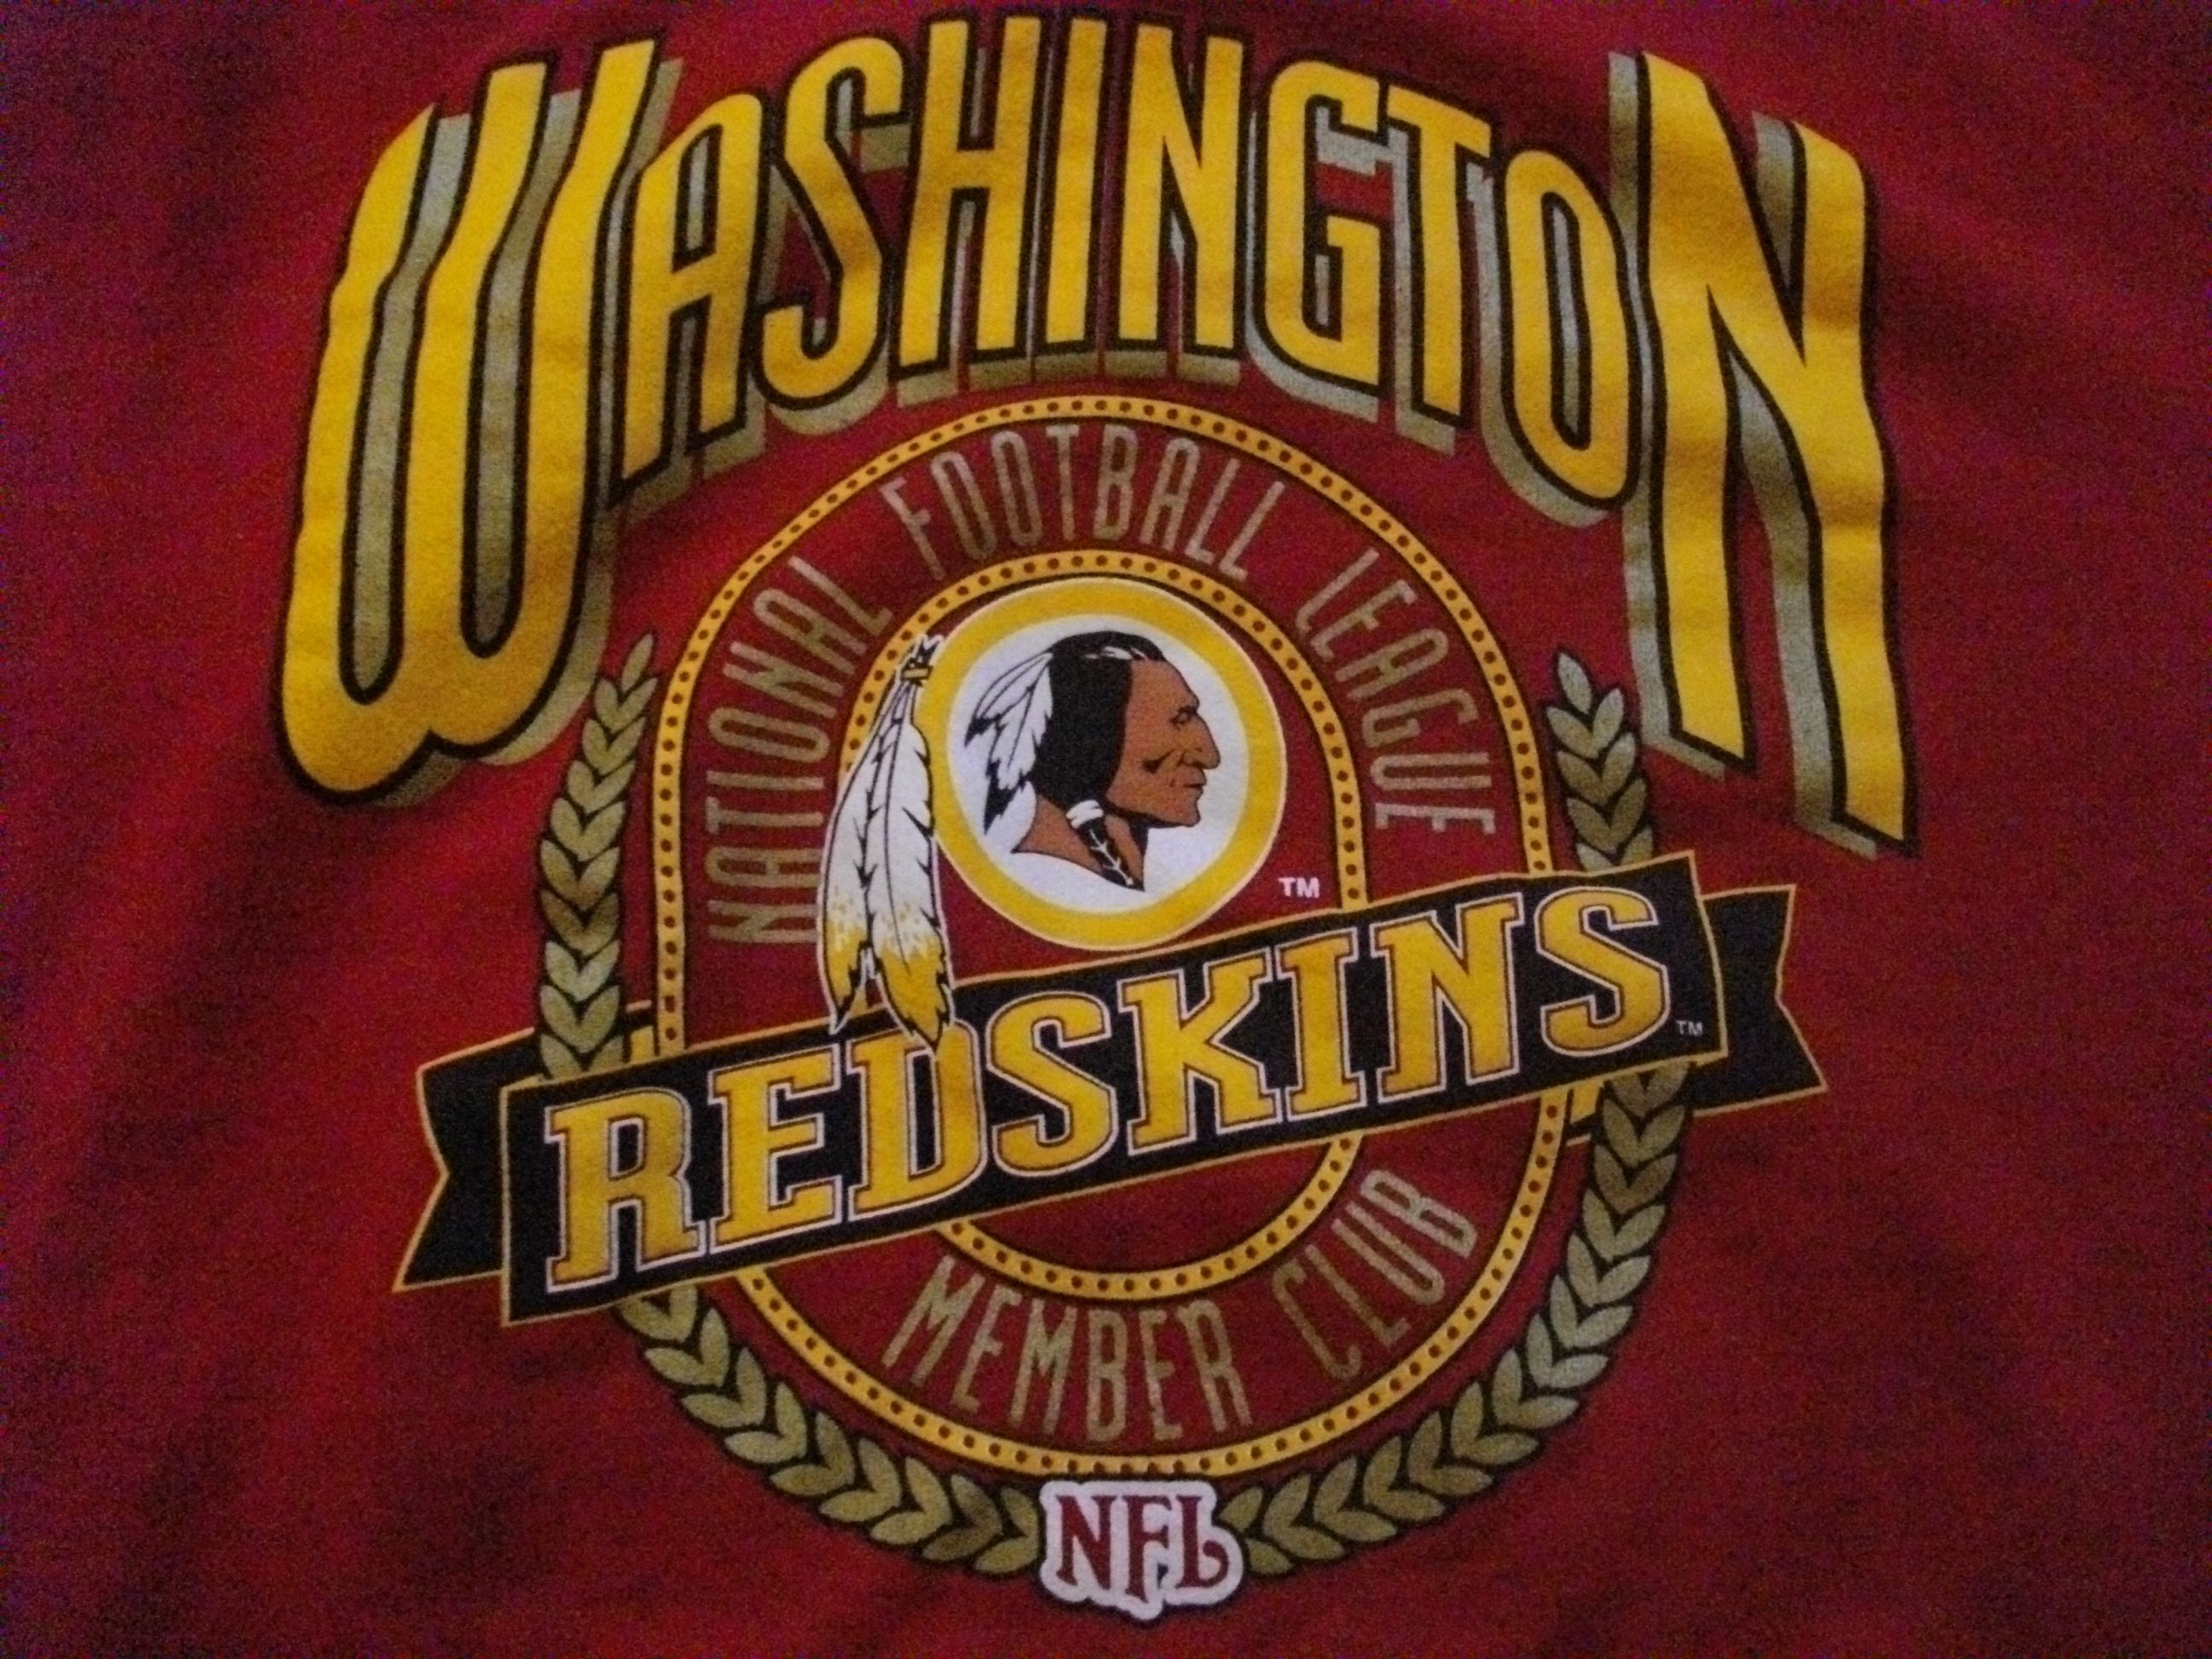 Redskins wallpaper for ipad